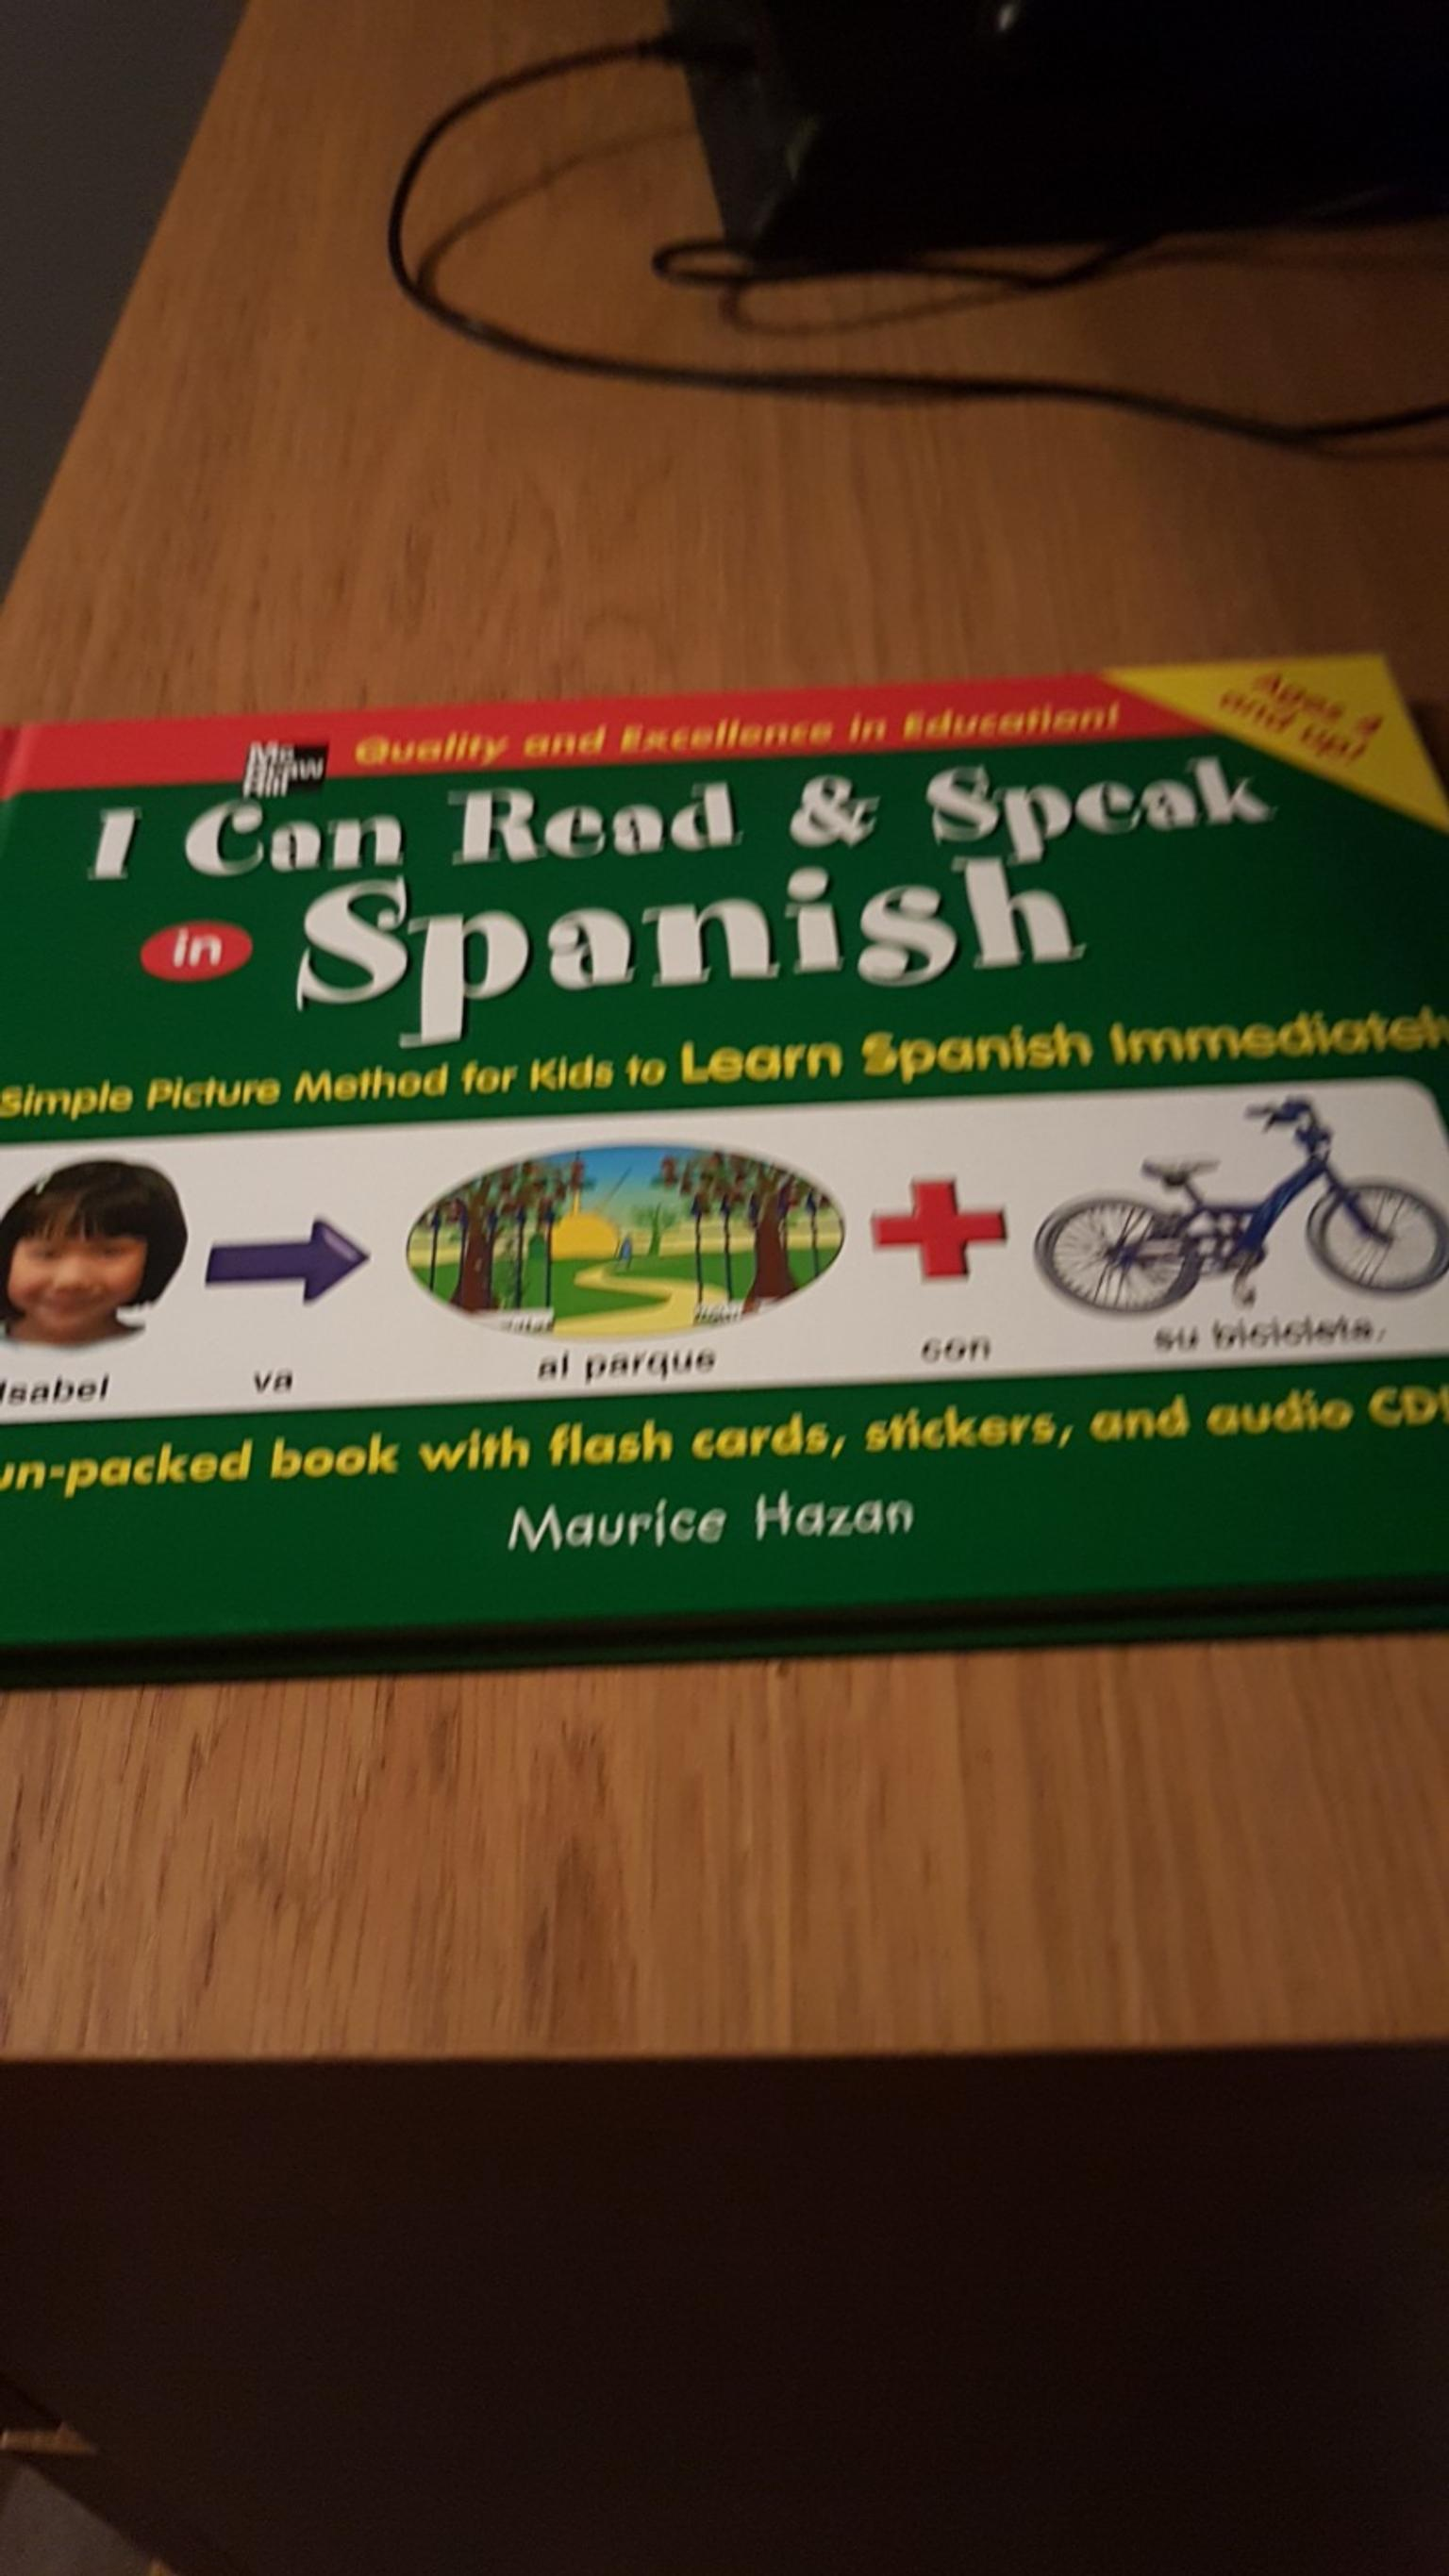 Spanish book for kids